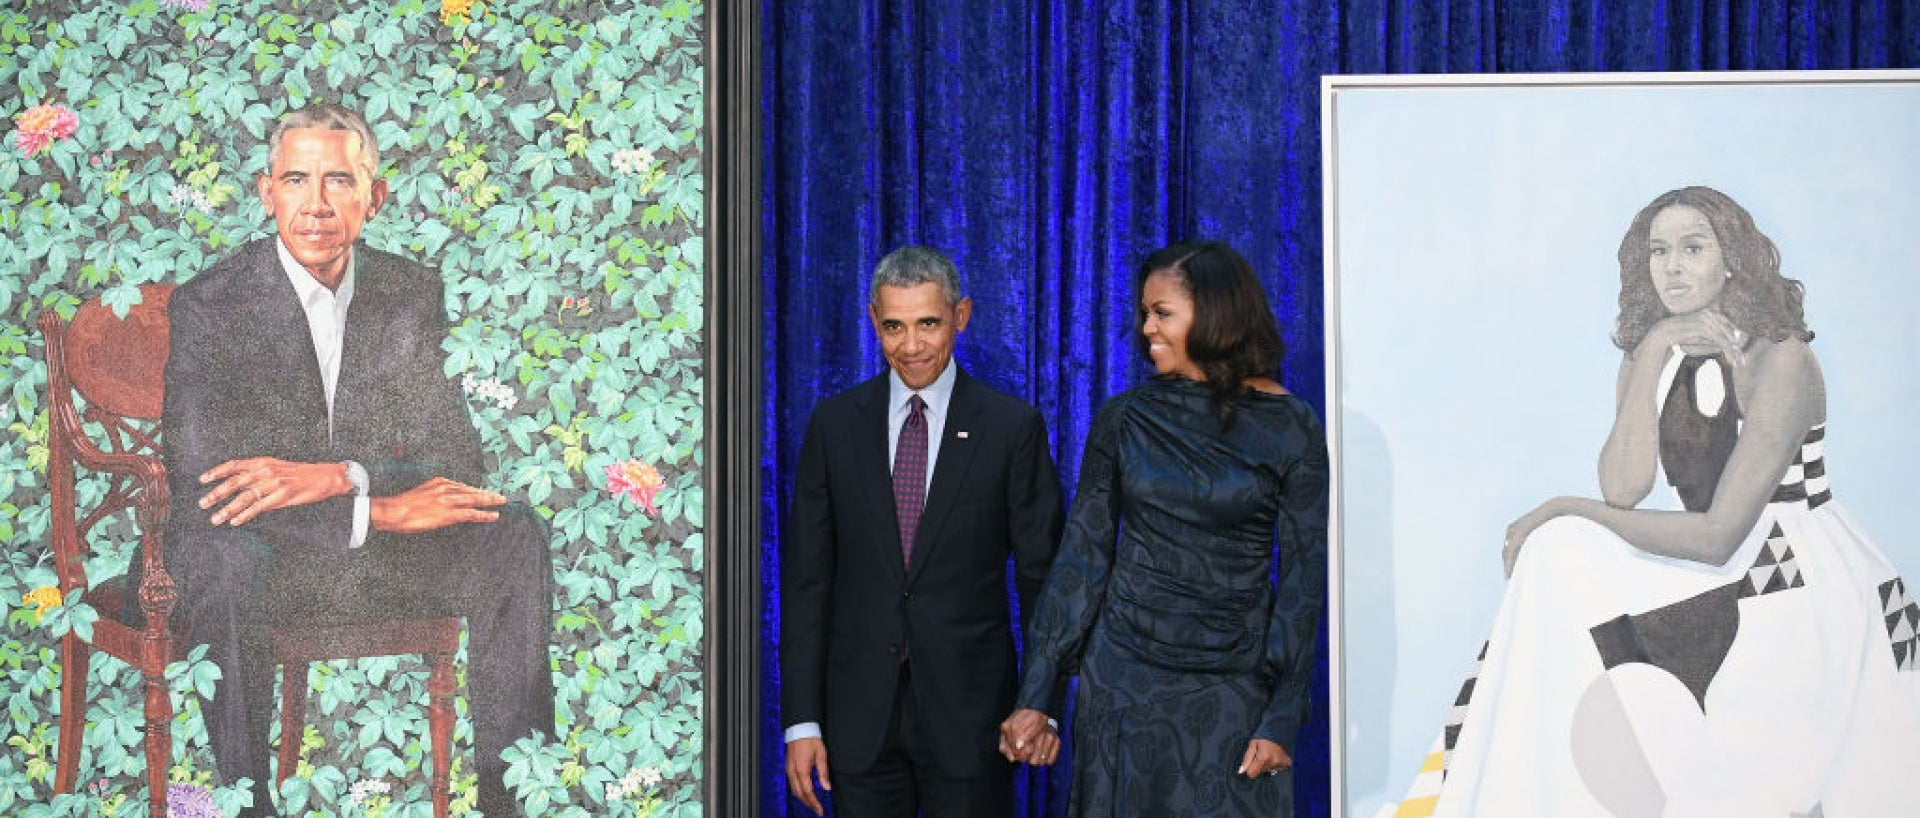 The Obamas standing in the middle of the portraits